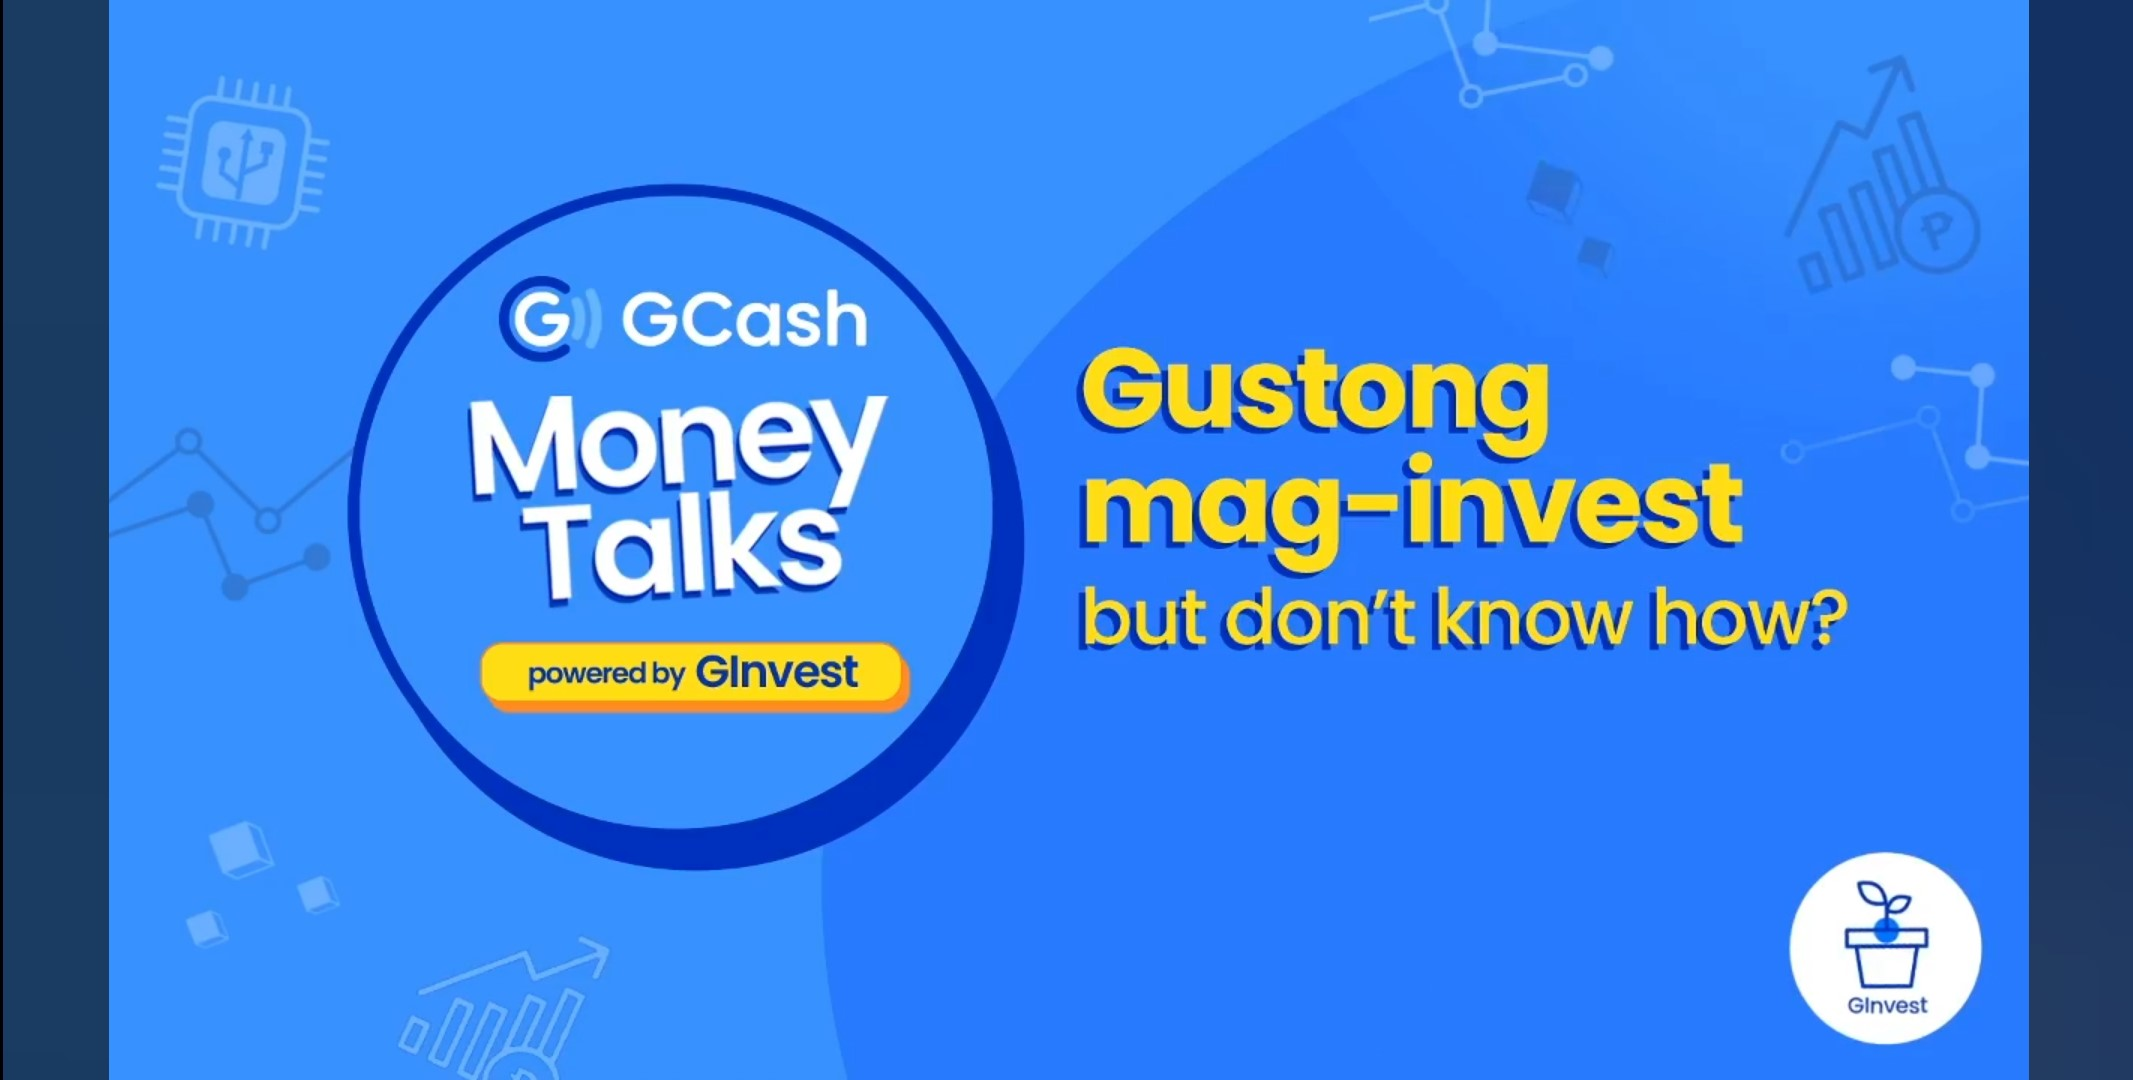 GCash makes new investors everyday with GInvest